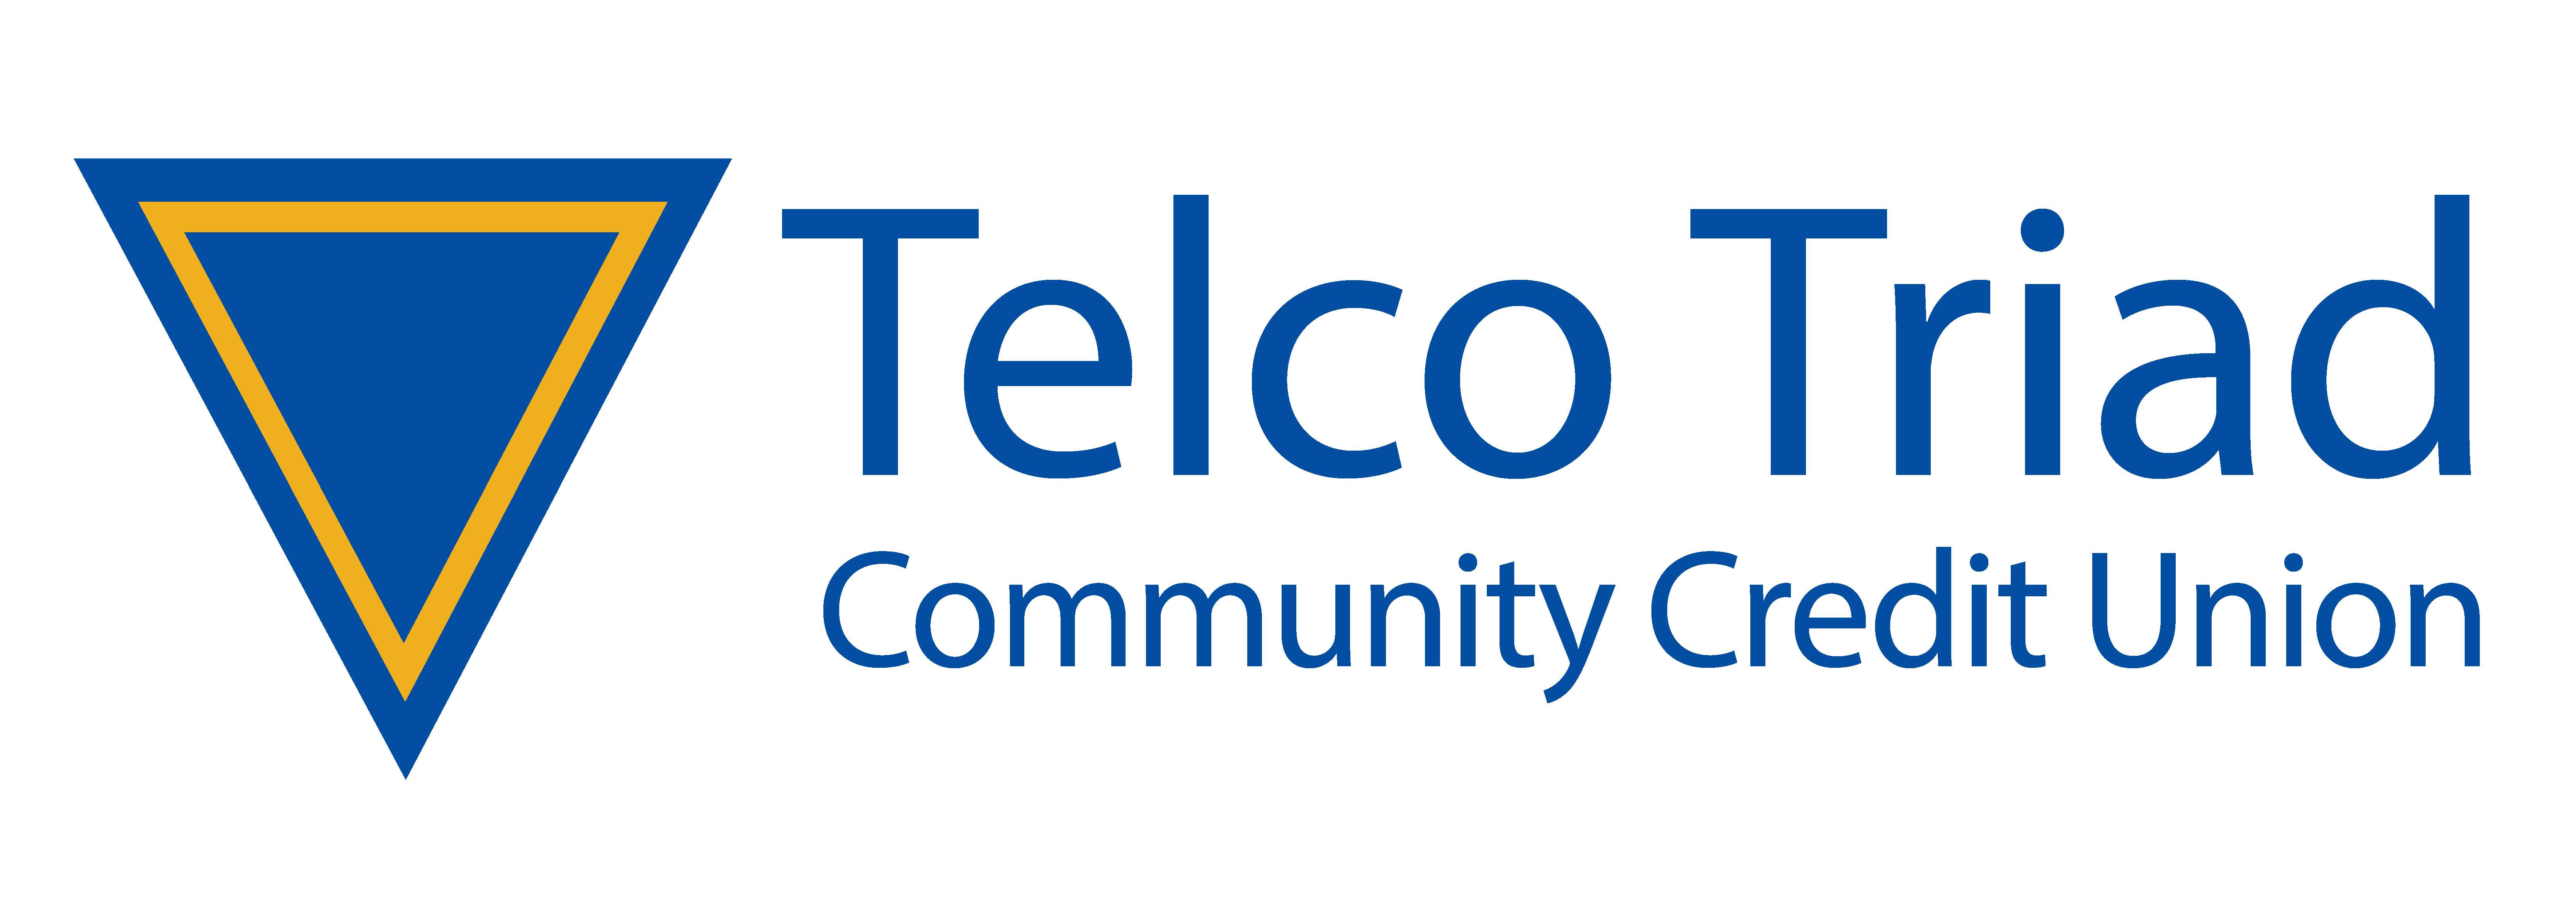 Telco Triad Community Credit Union